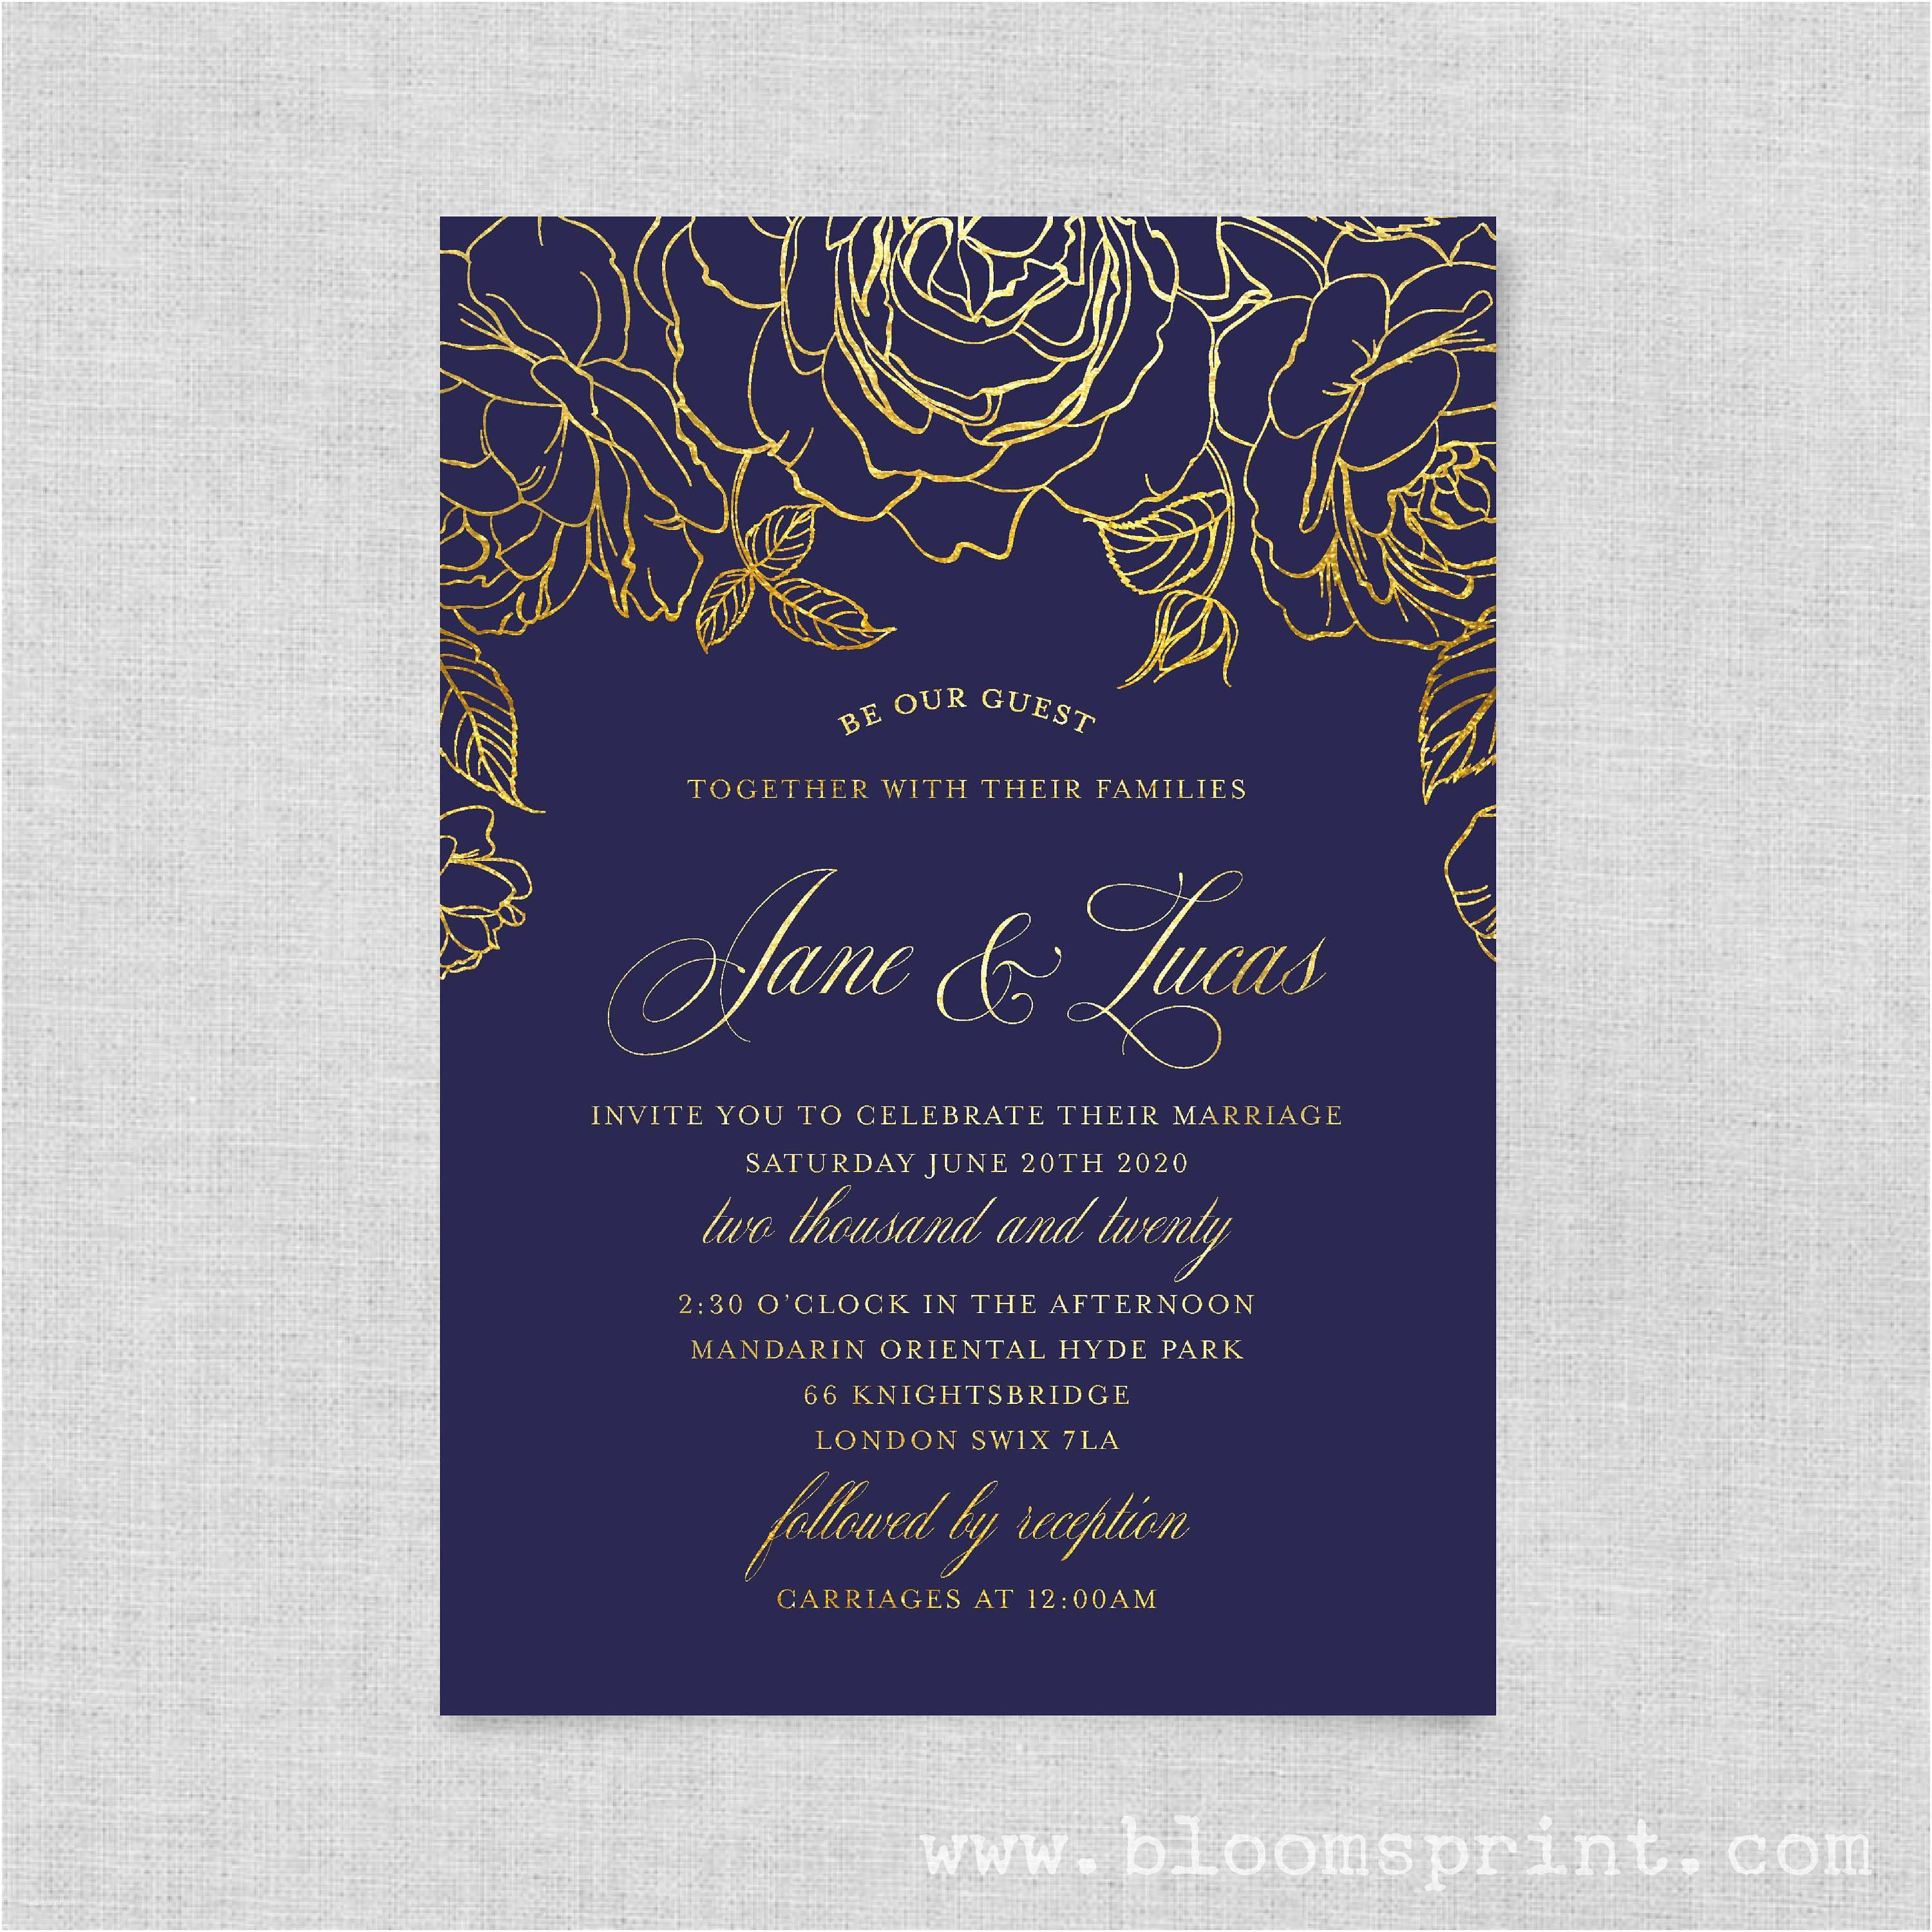 Beauty and the Beast Wedding Invitations Wedding Invitation Template Simple Wedding Invitation